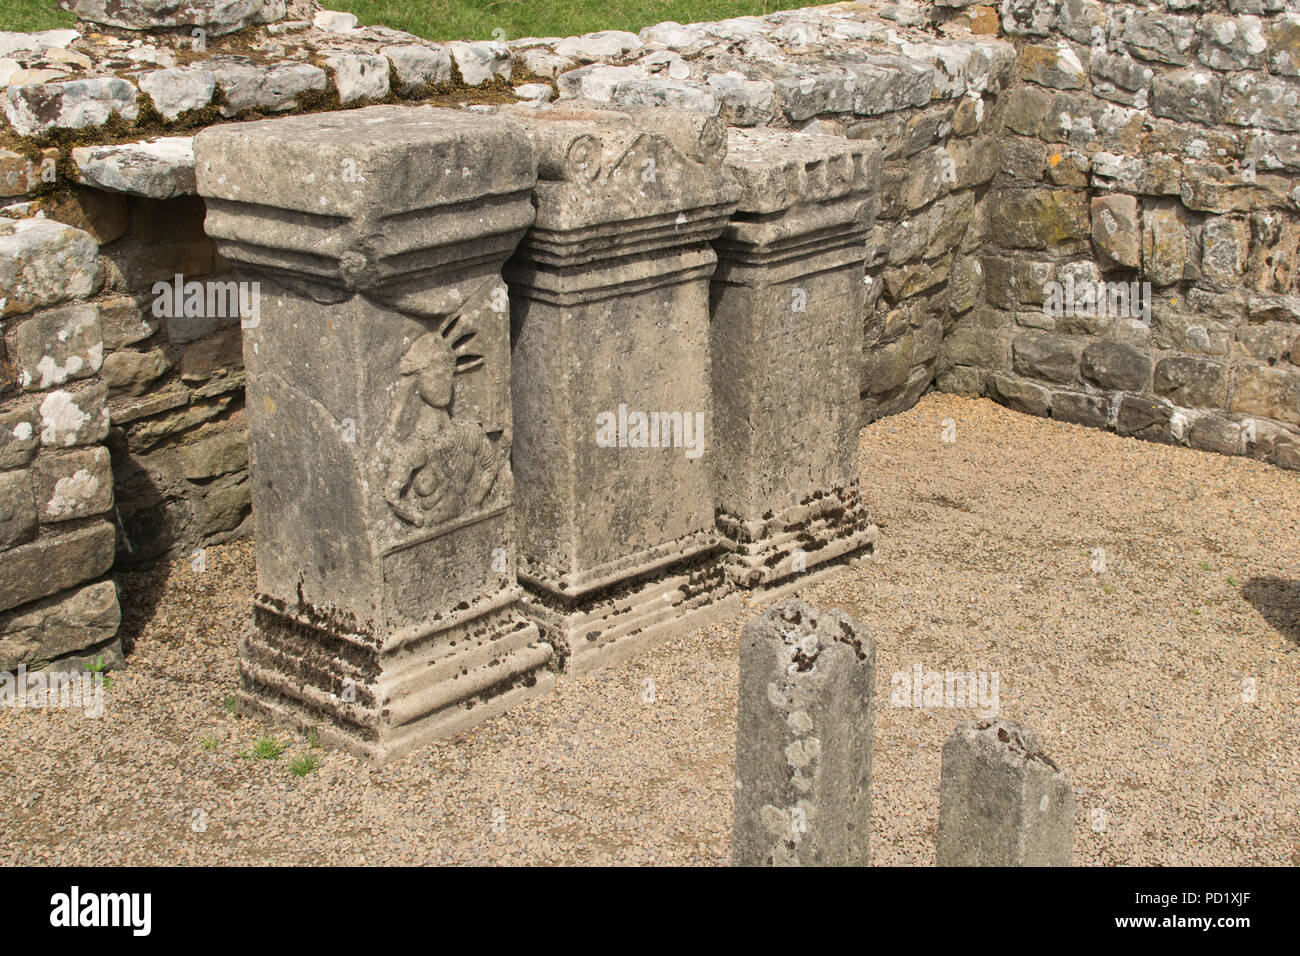 Mithras Temple, Carrawburgh, near Brocolita Roman Fort, Hadrian's Wall - Stock Image